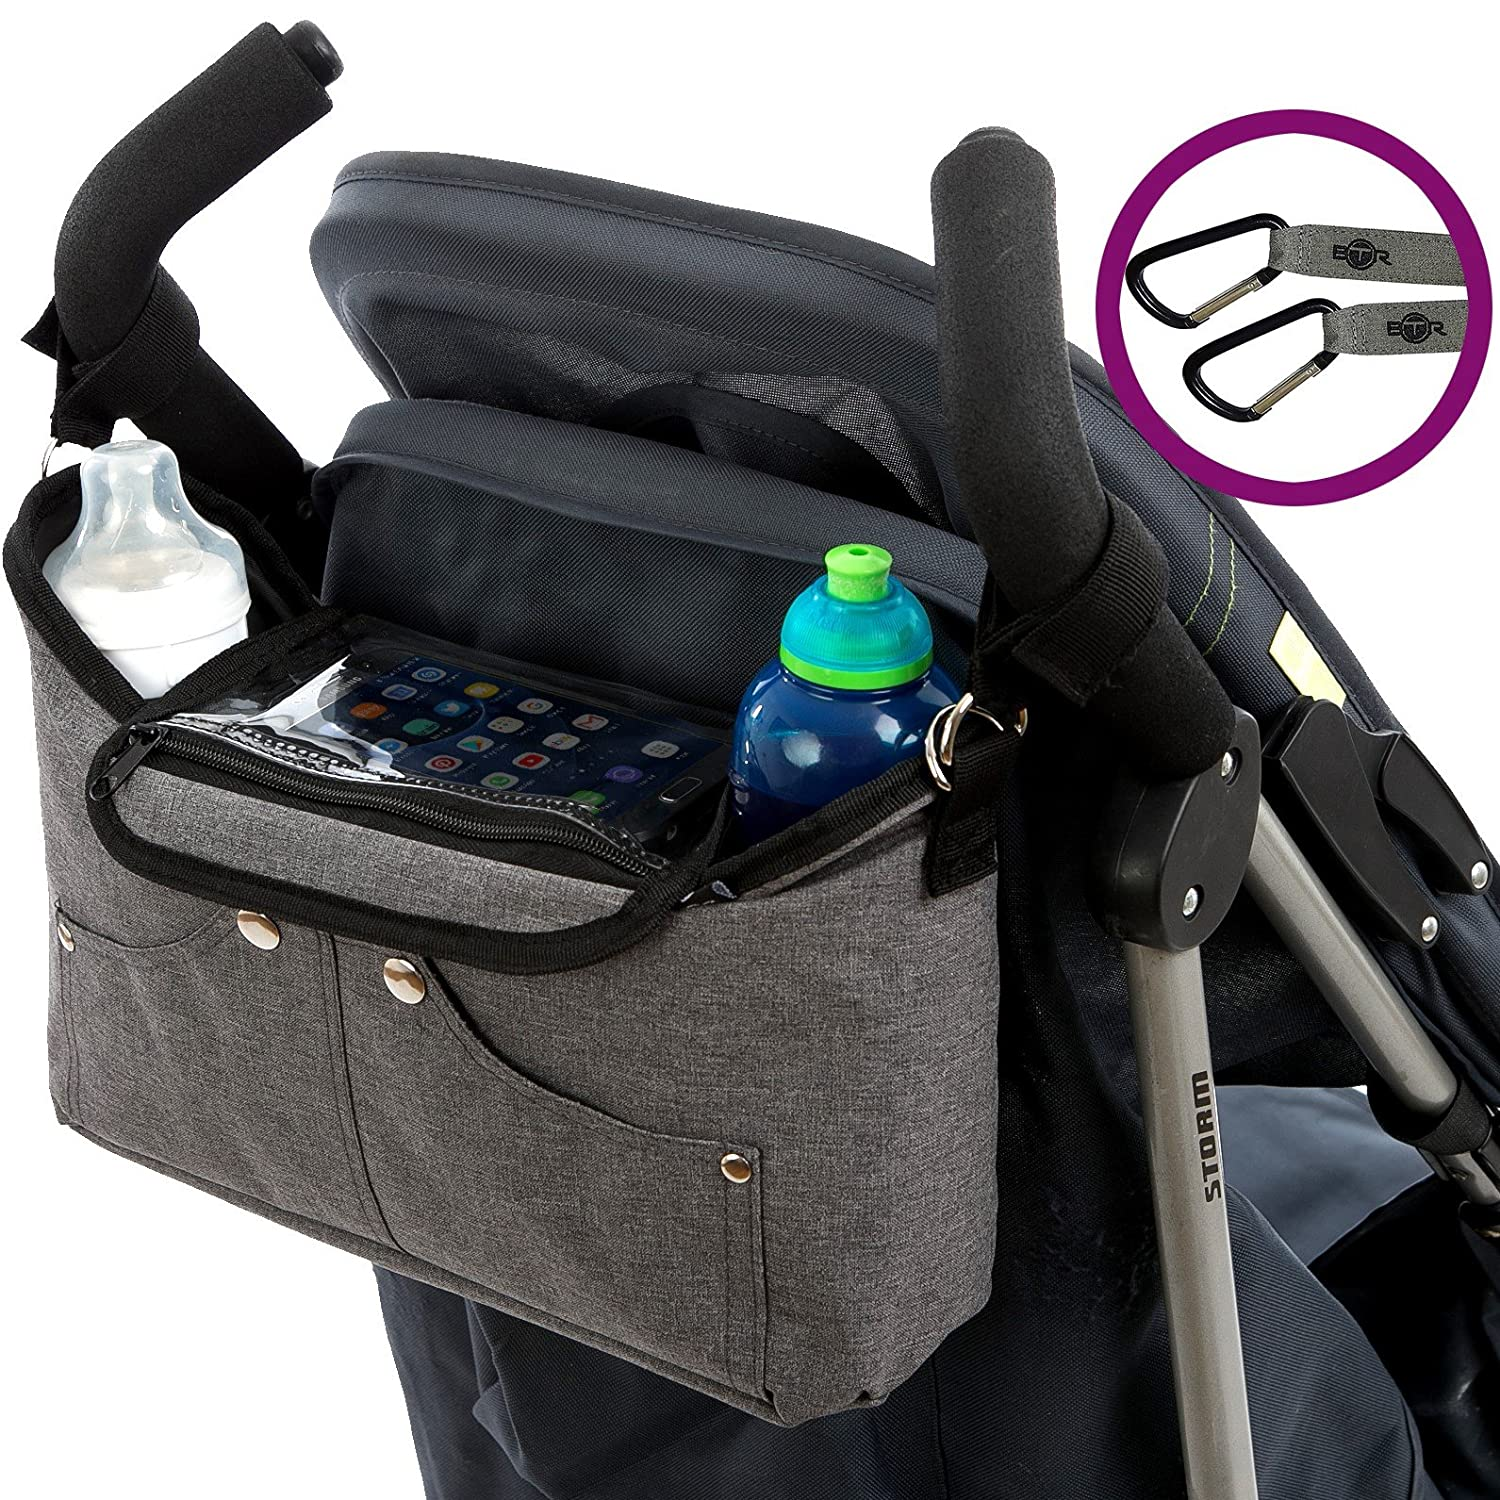 BTR Buggy Organiser & Pram Organiser Bag for Prams & Buggies With Mobile Phone Holder. PLUS 2x Pram Hooks and Buggy Clips. BTR 'Tootles' Buggy Organiser makes A Great Baby Gift or Baby Shower Gift & Baby Accessory